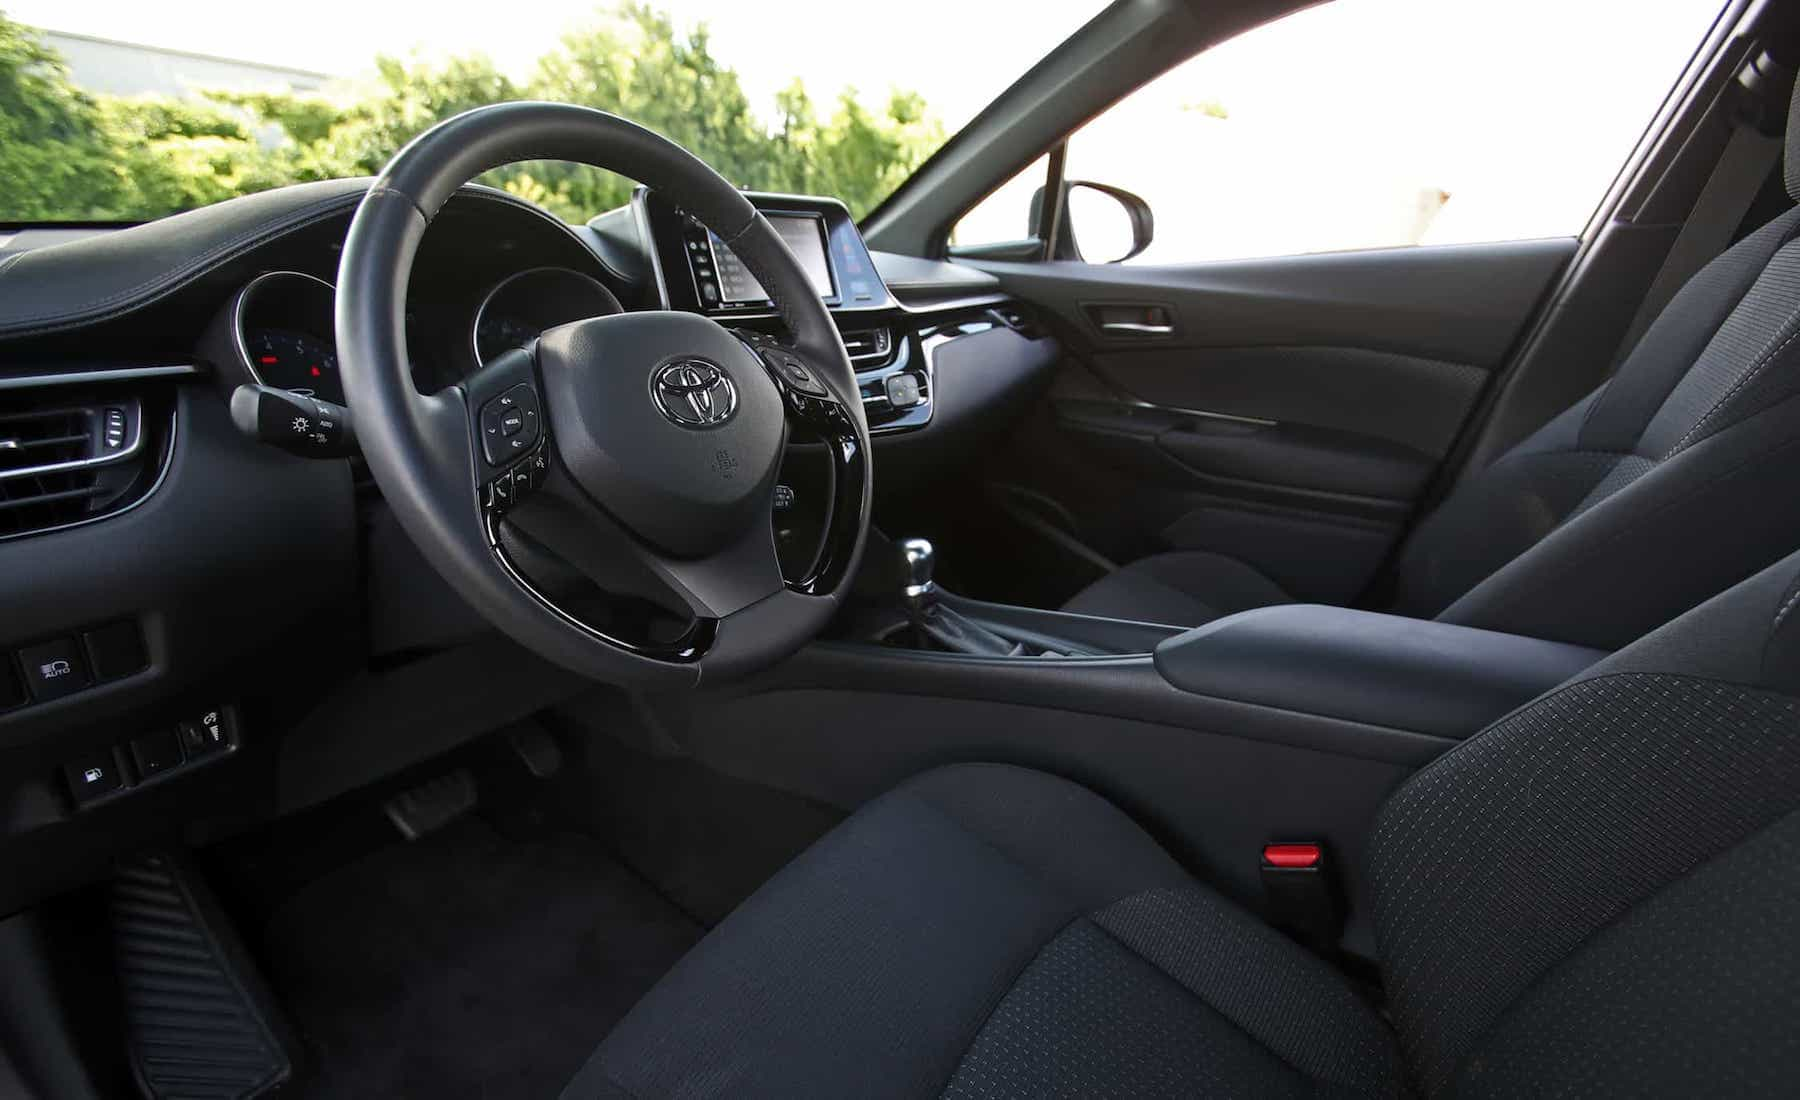 2018 Toyota C HR XLE Premium Interior View Steering (Photo 42 of 52)